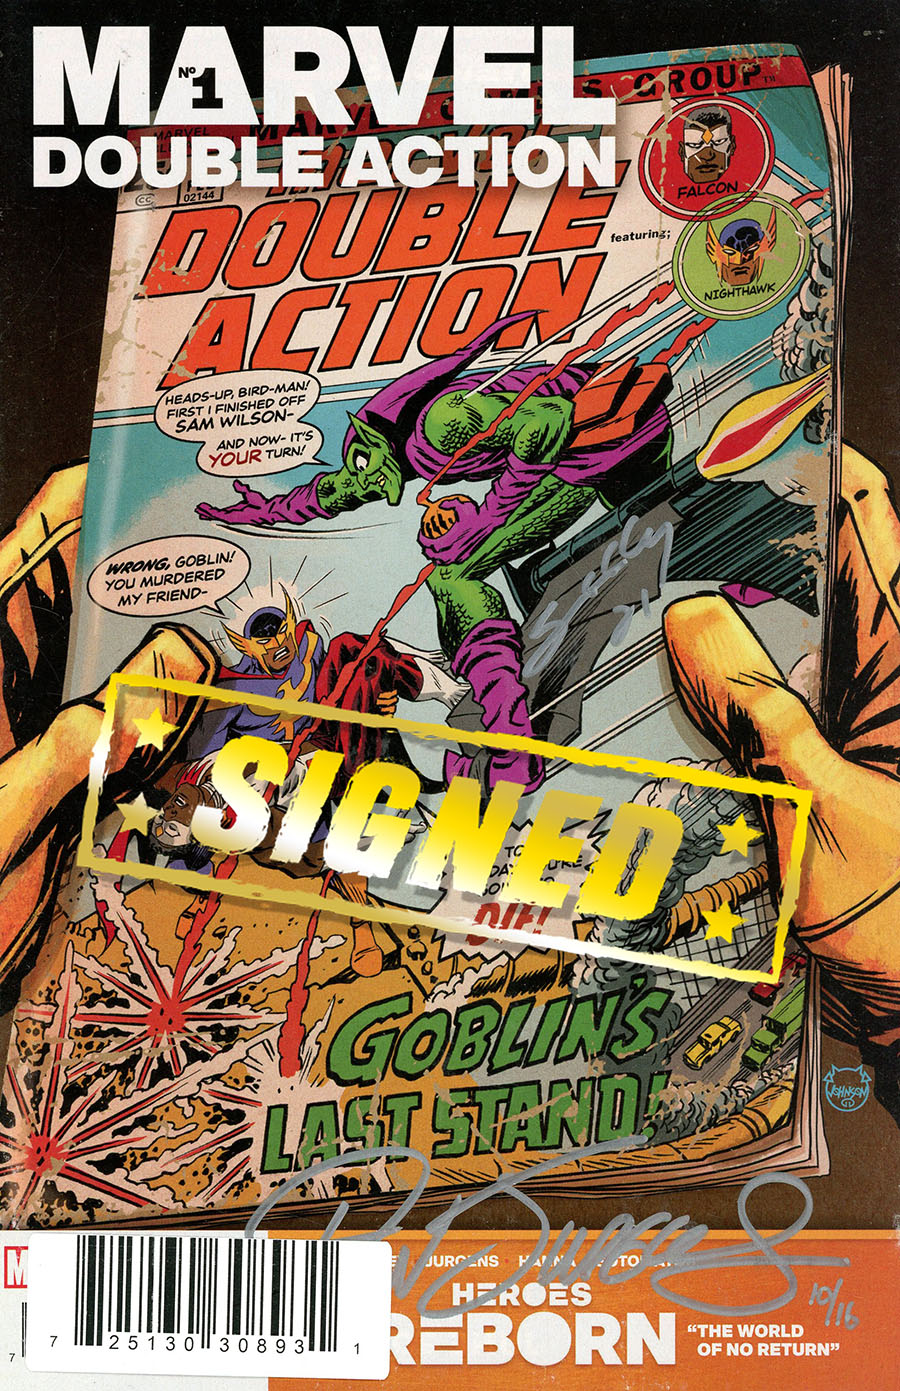 Heroes Reborn Marvel Double Action #1 (One Shot) Cover E DF Ultra-Limited Edition Signed By Tim Seeley & Dan Jurgens